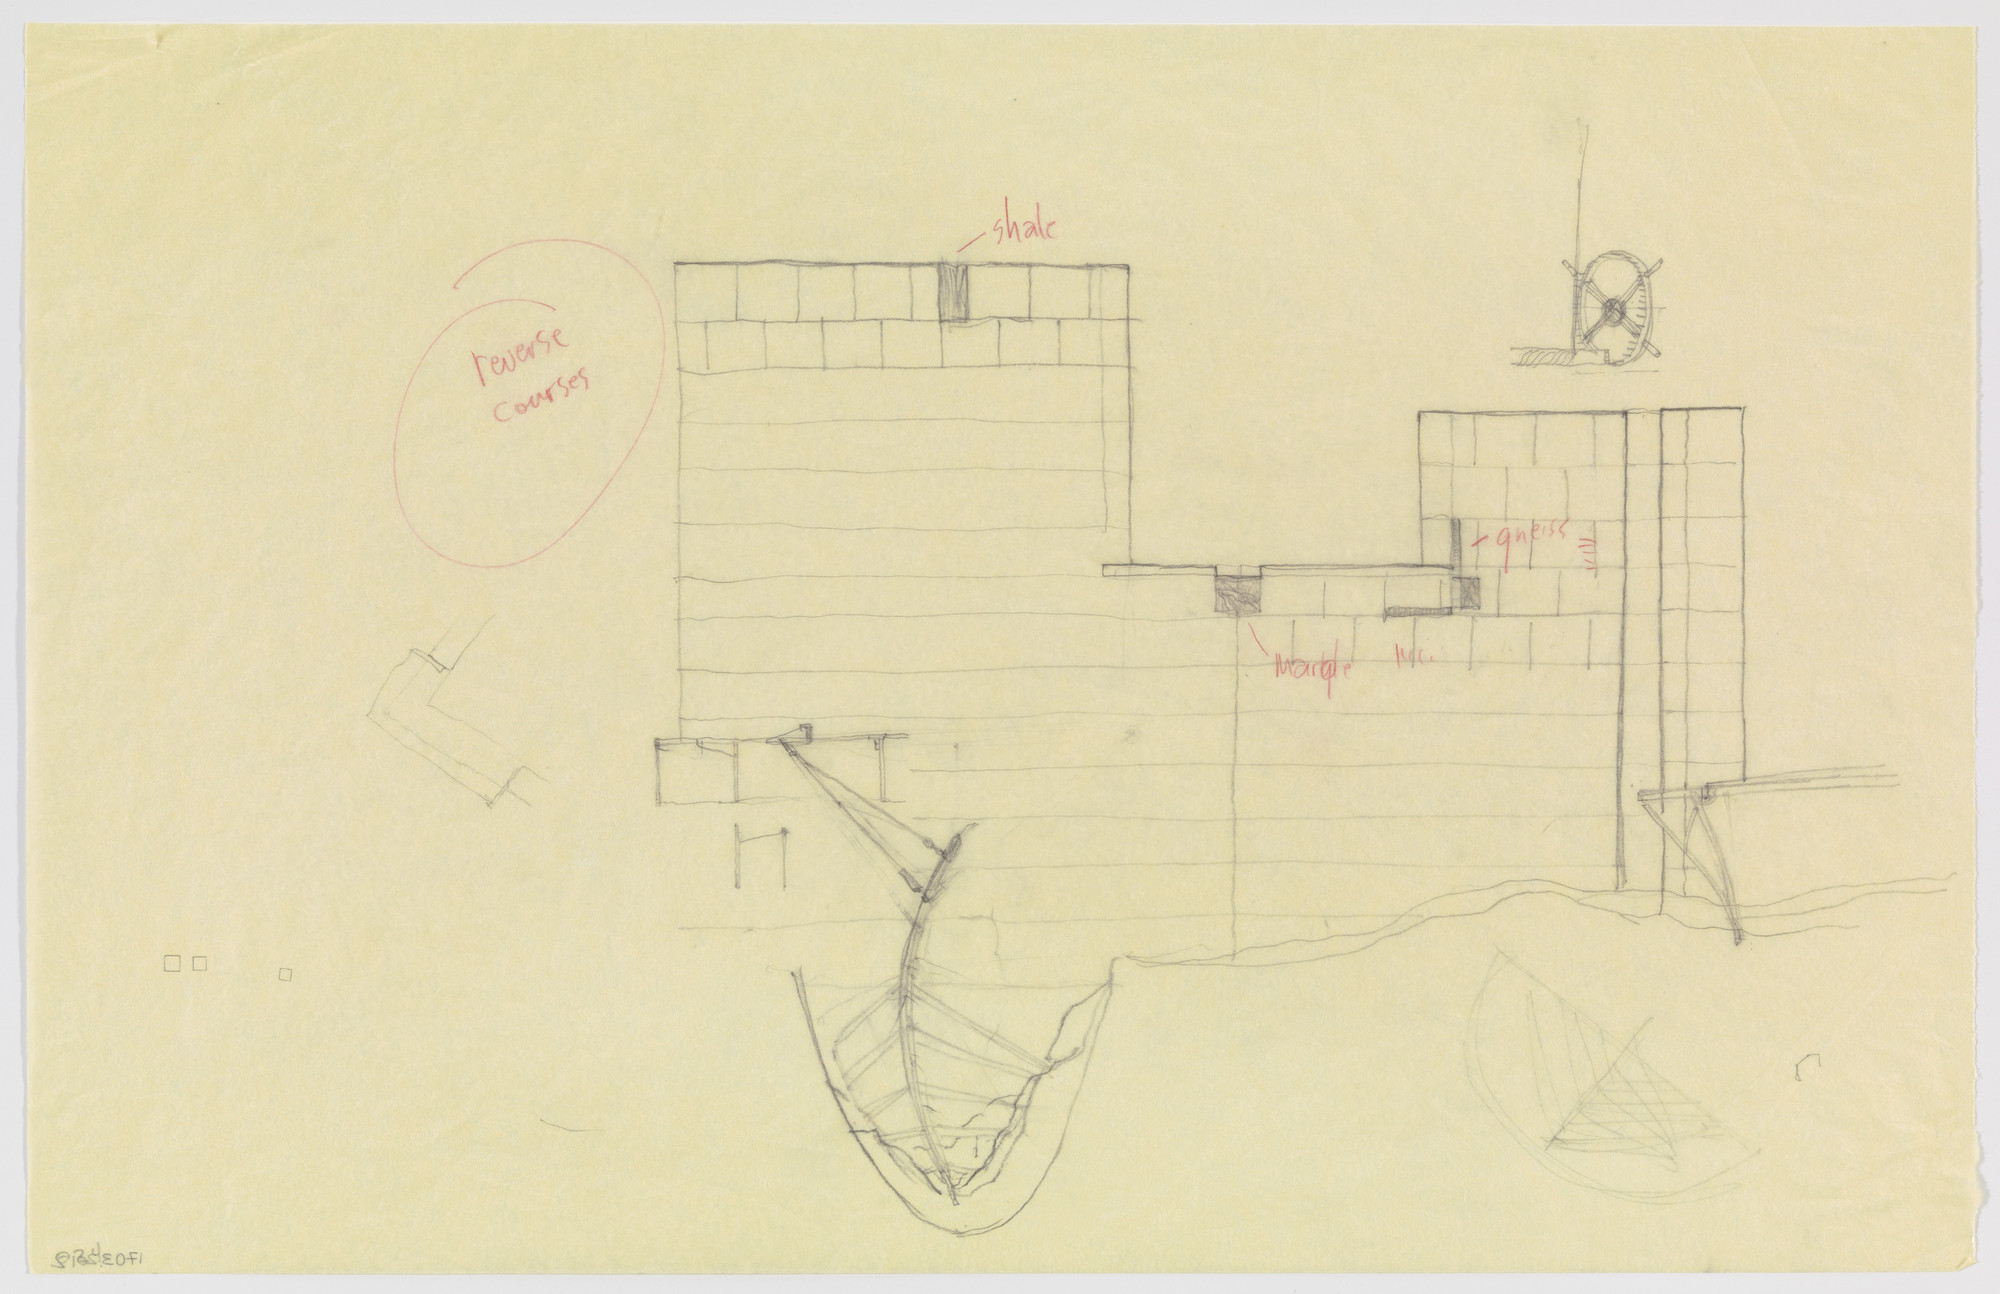 Douglas Darden. Oxygen House Project (Elevation). 1988